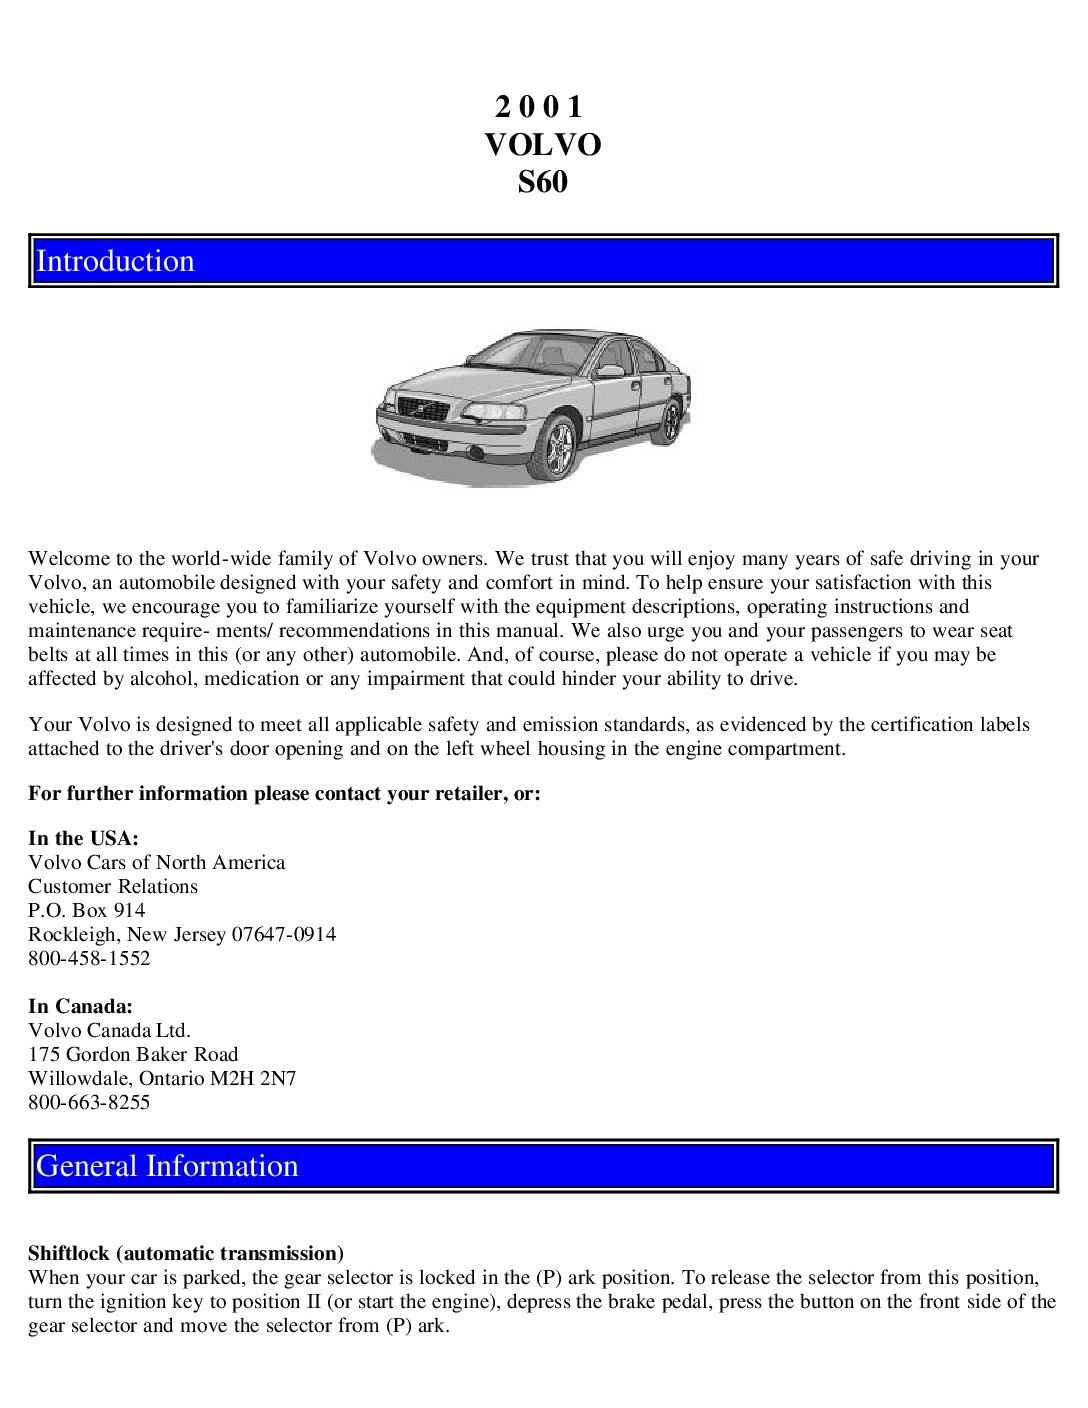 2001 volvo s40 owners manual